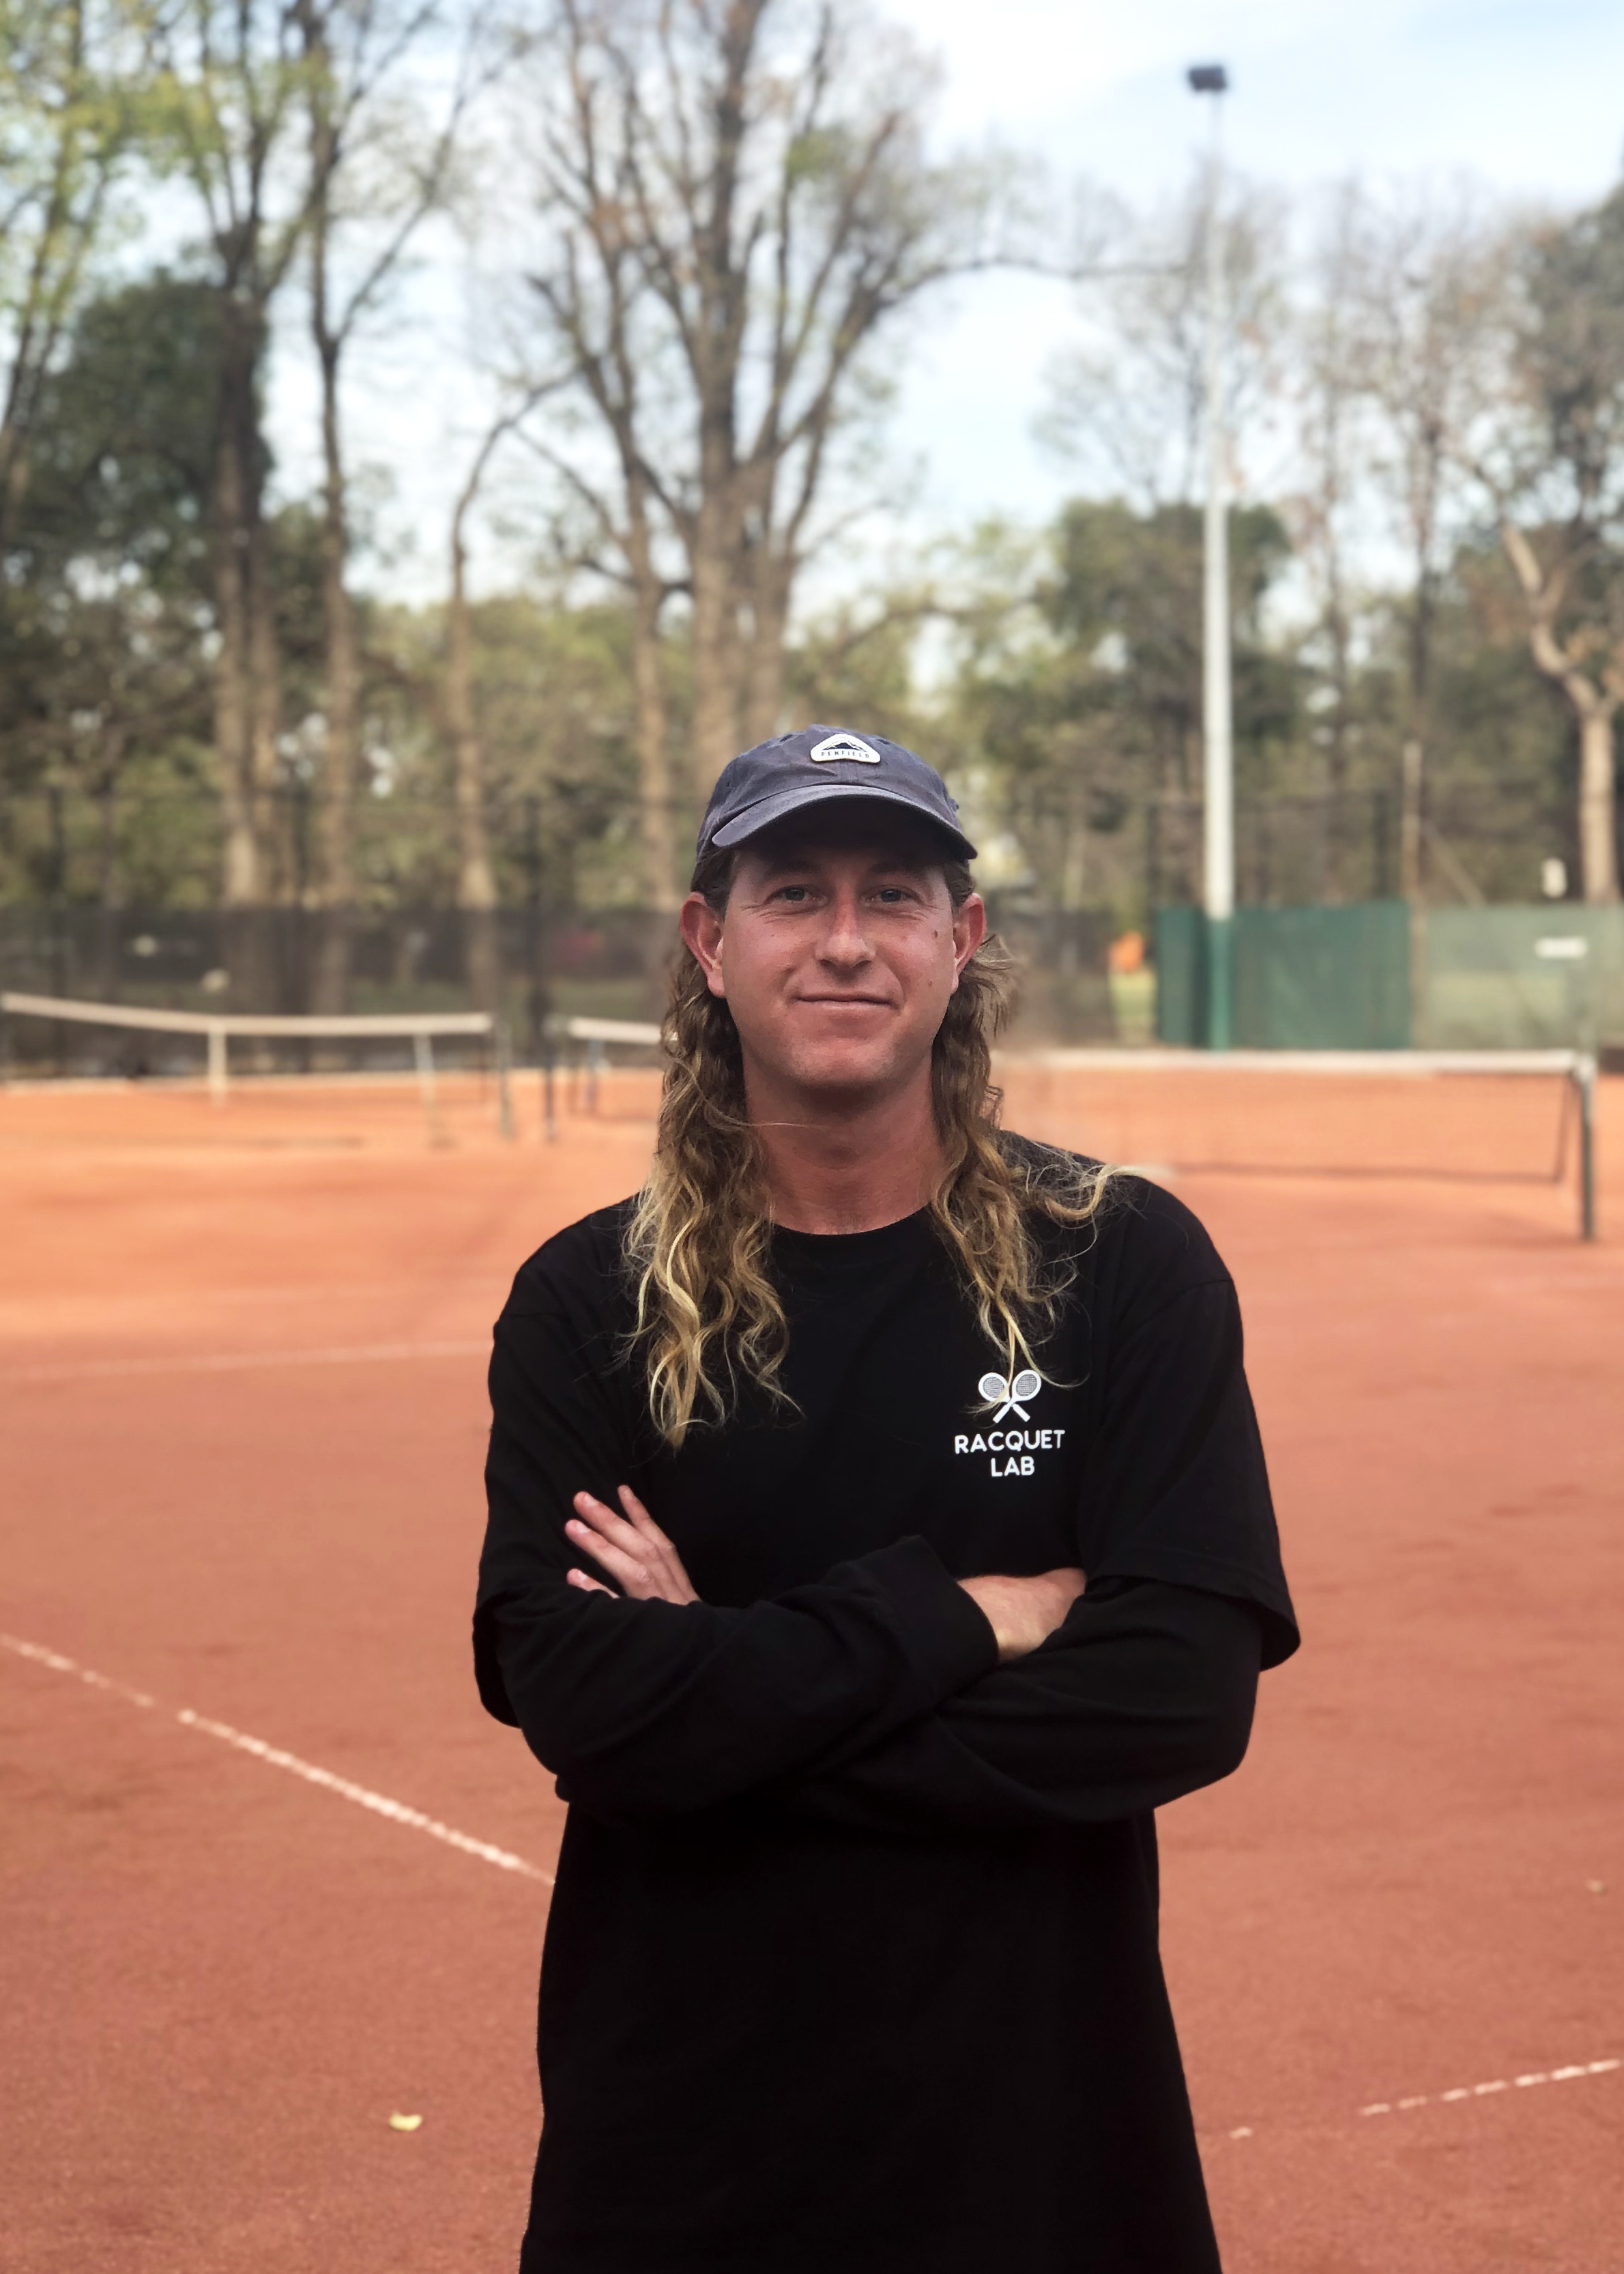 Bryce Devlin - Bryce is a Tennis Australia Junior Development coach and is currently enrolled in the 2019 Club Professional course. He is the current Fitzroy Tennis Club singles and mixed champion.Favourite player : Andy RoddickFavourite tennis moment : Watching Djokovic destroy Nadal in the 2019 Aus Open final in a room full of passionate Nadal fans.Favourite other sport : Fortnite